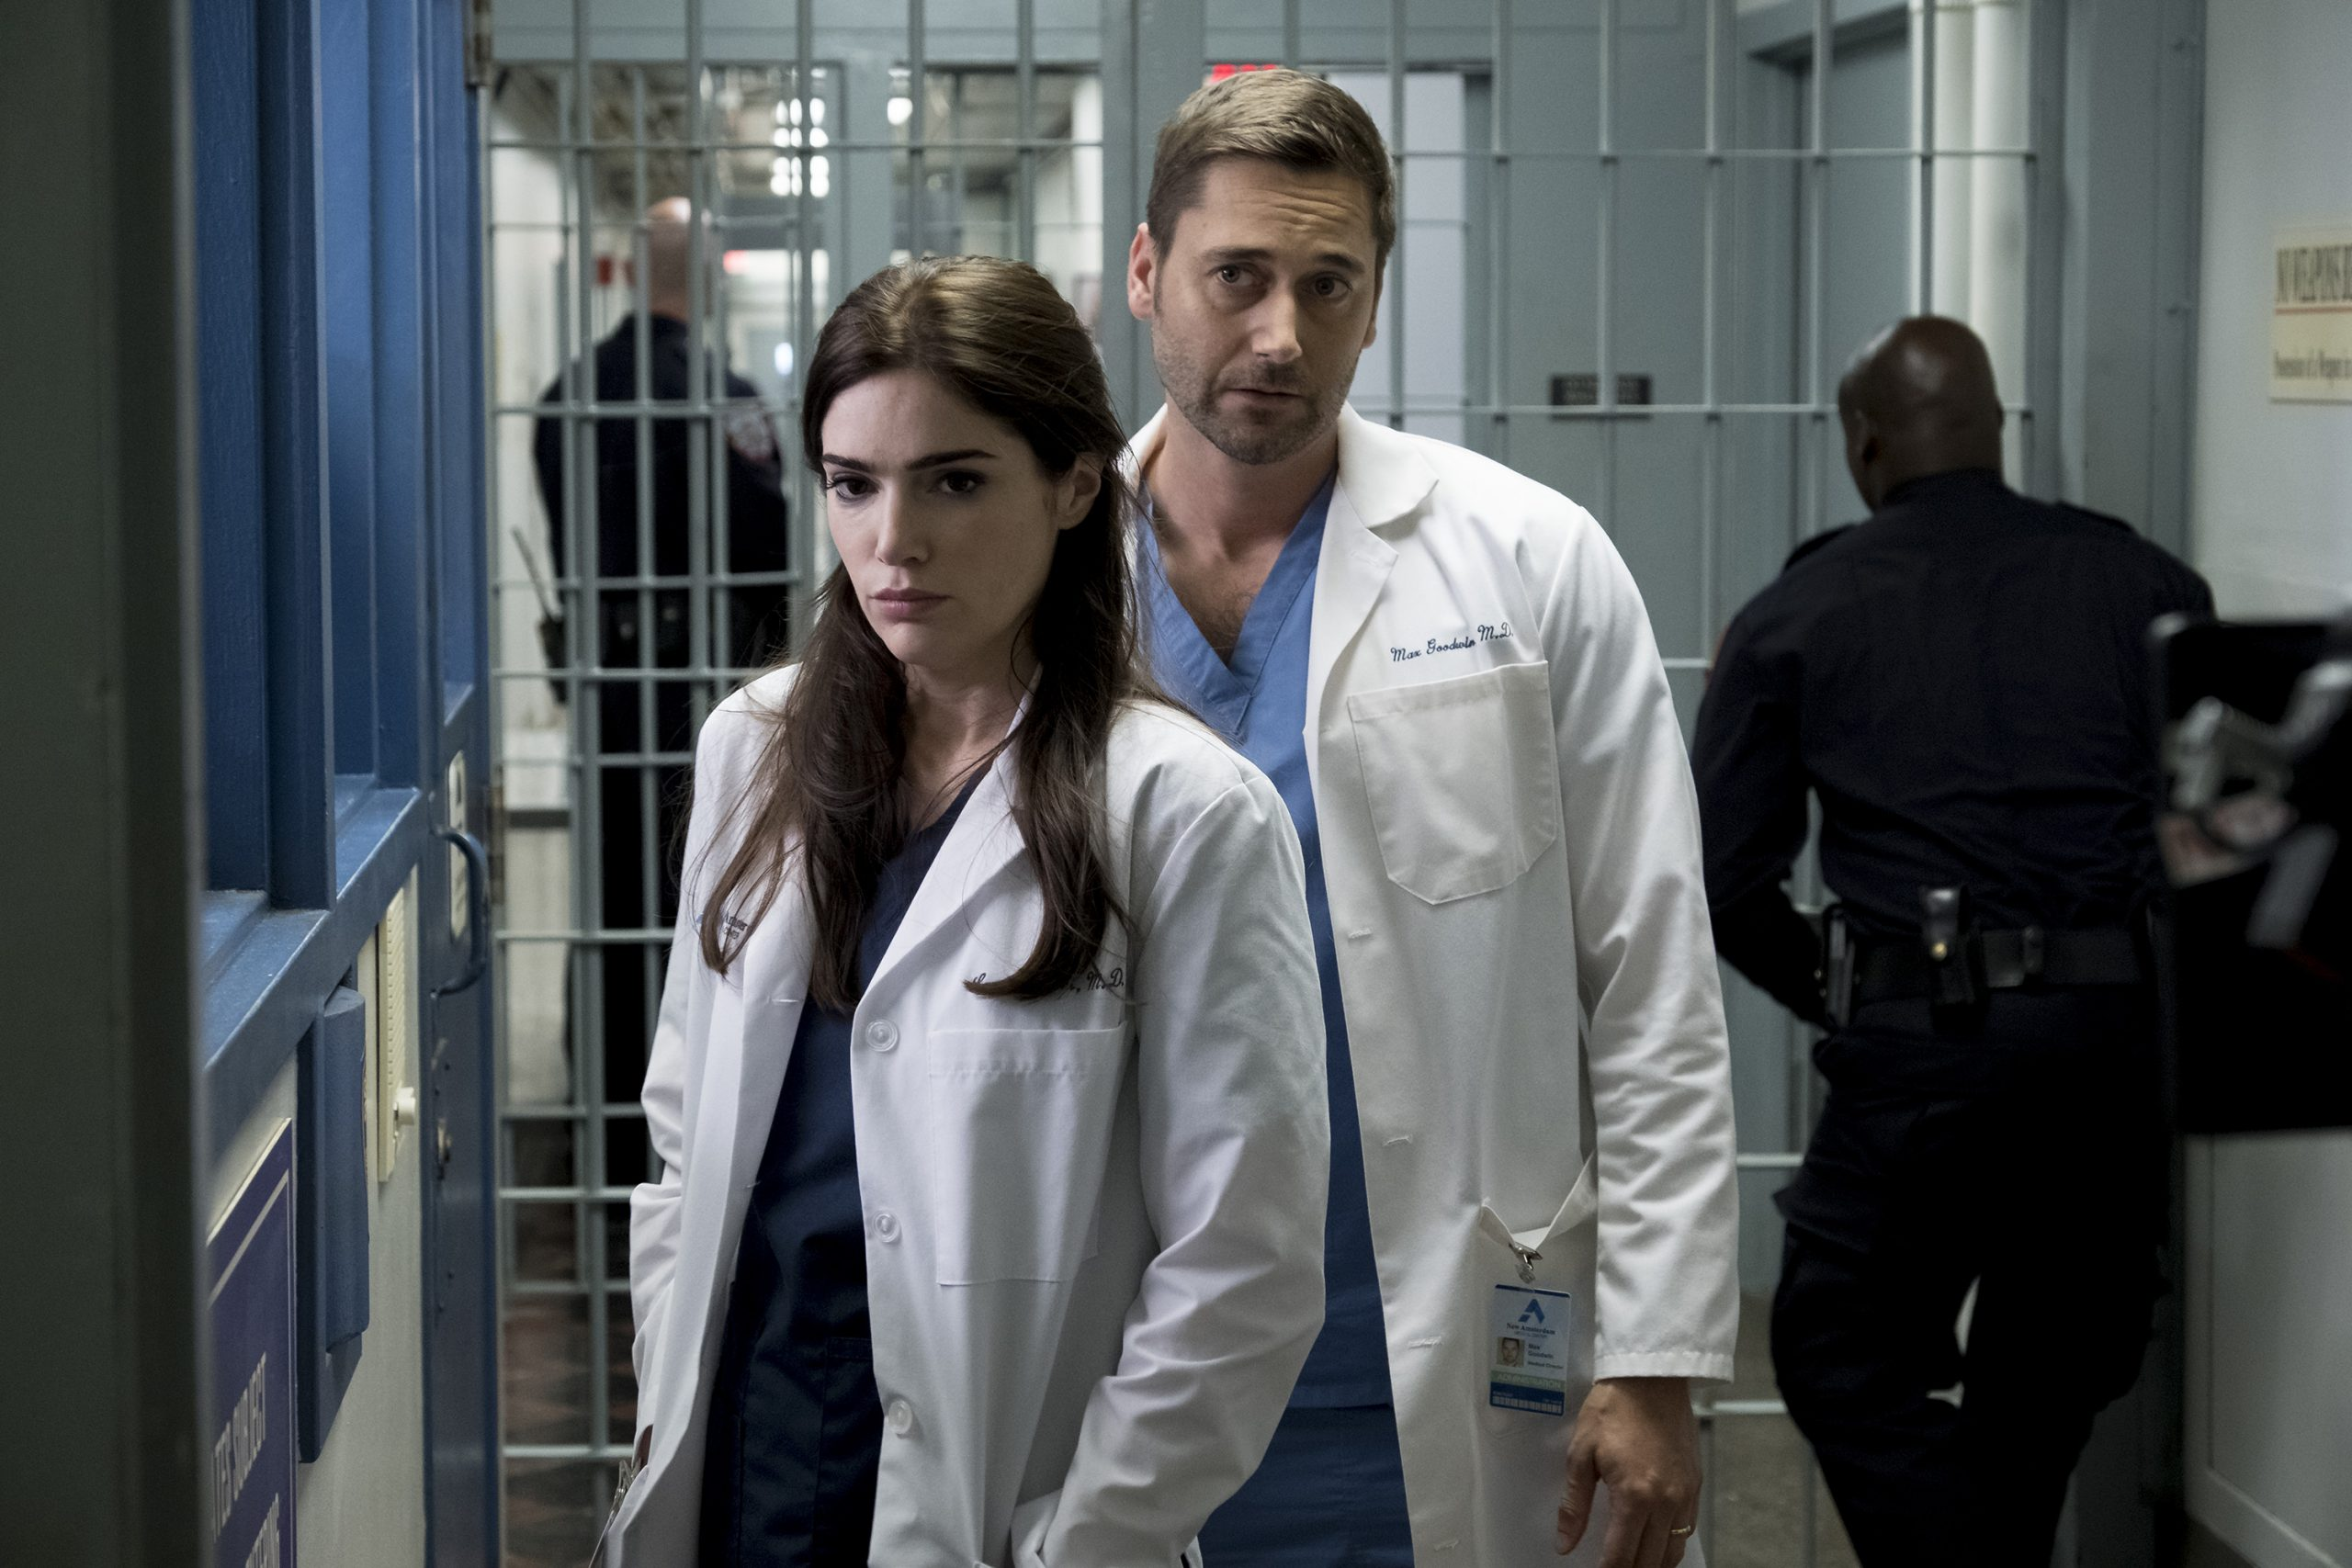 New Amsterdam Season 3 Episode 3: Release date, watch online and preview